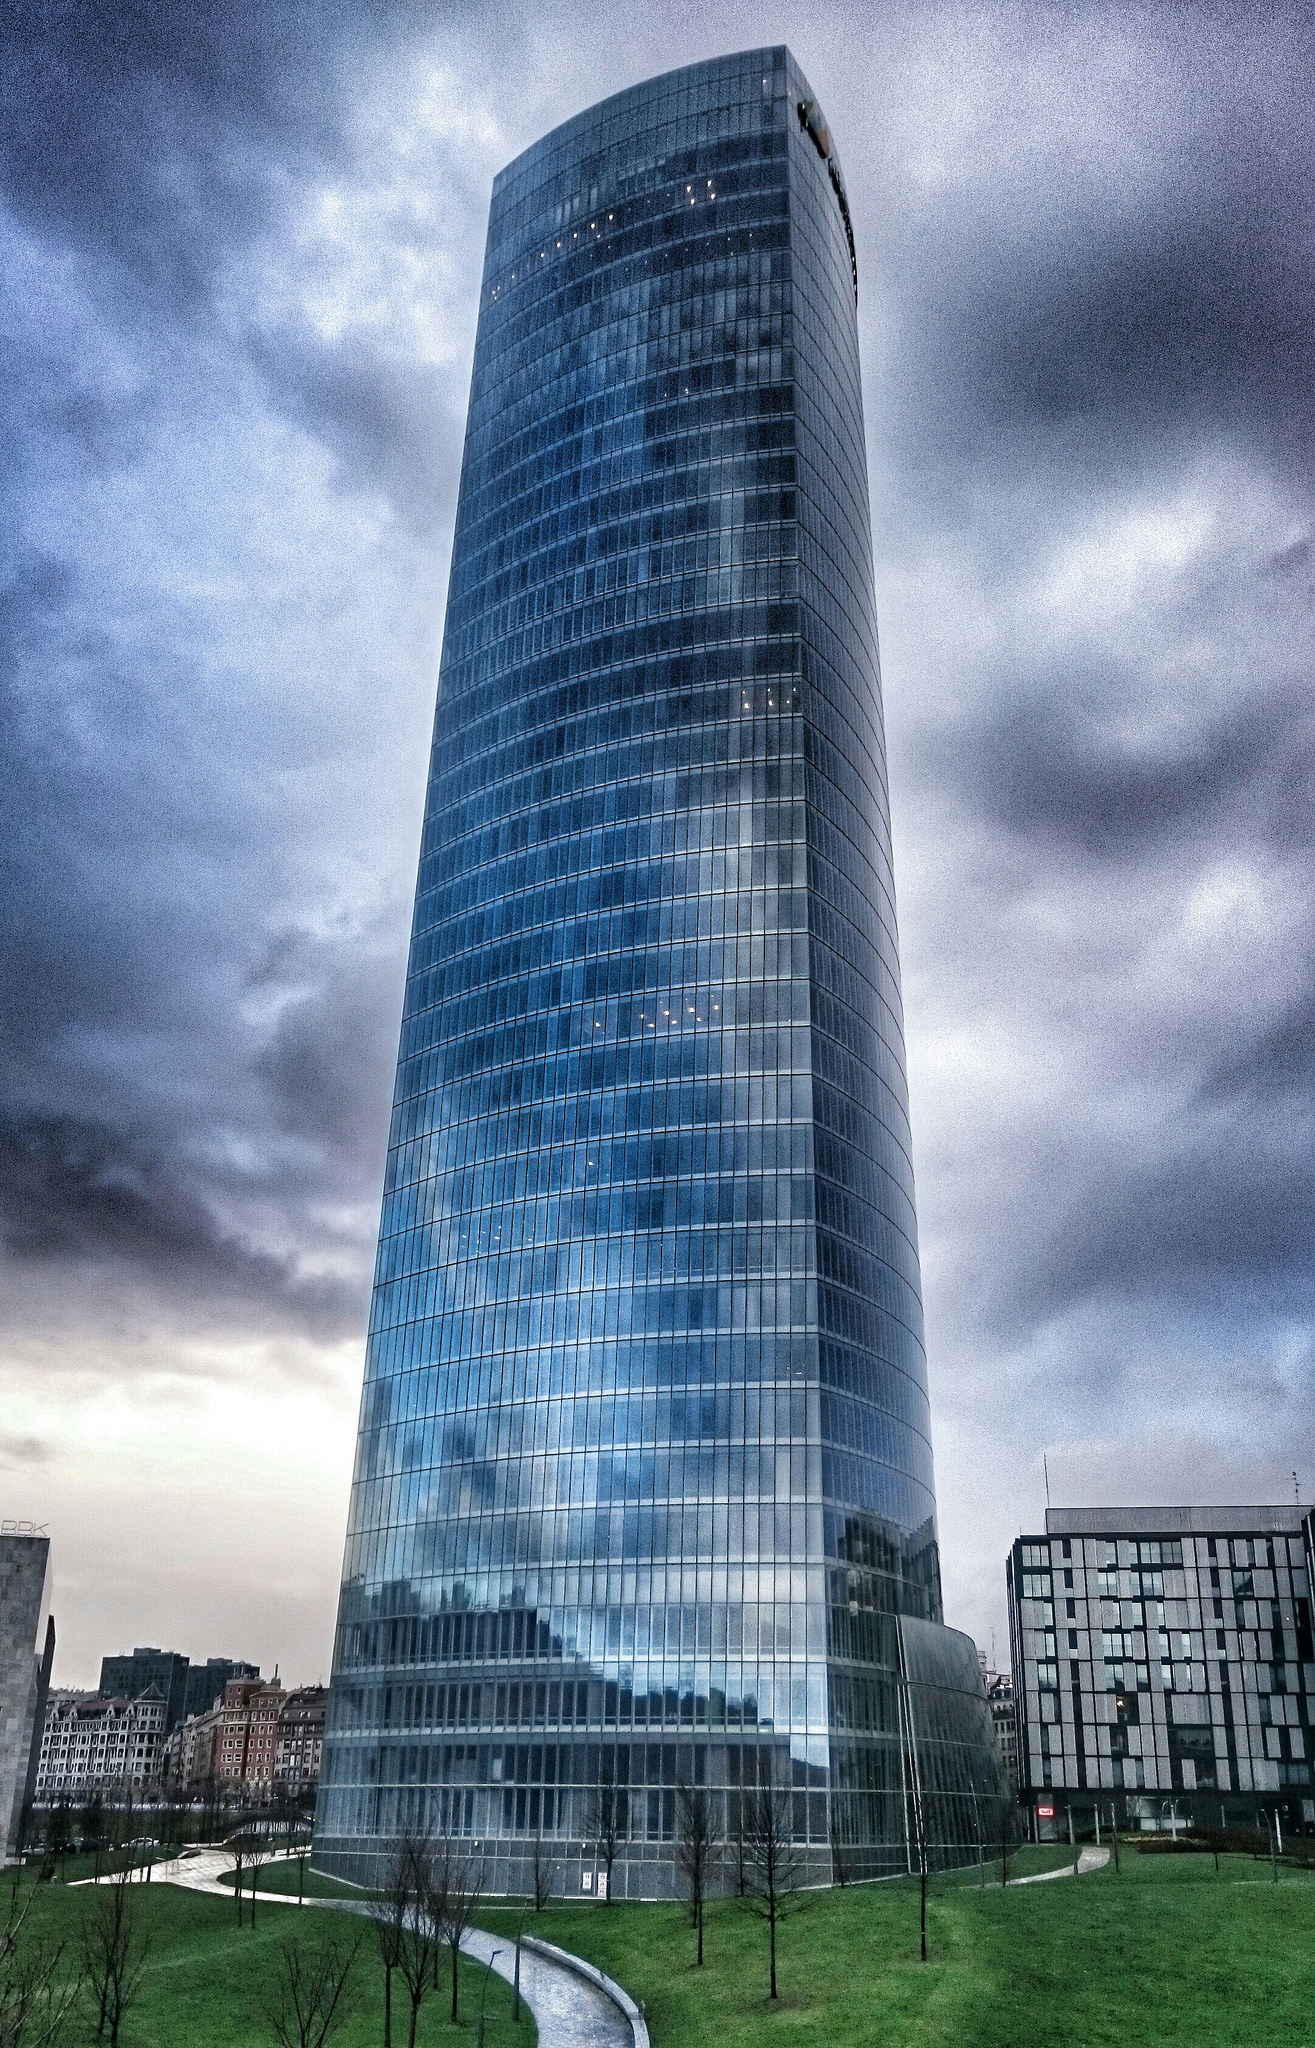 Iberdrola Tower Skyscraper In Bilbao Thousand Wonders